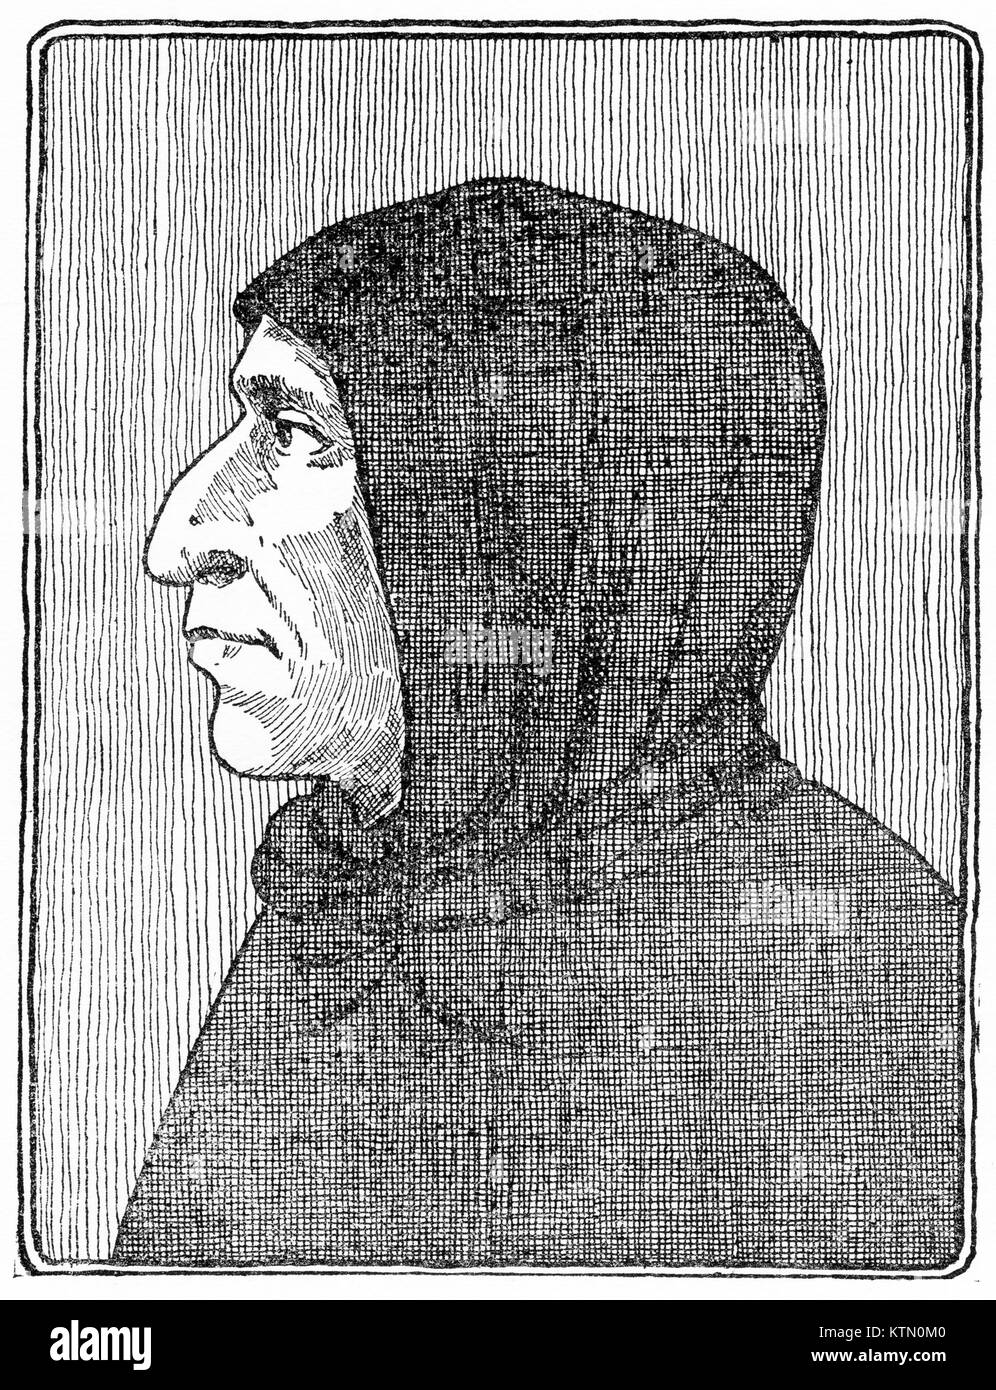 Engraving of Girolama Savonarola, Italian preacher and reformer (1452-1498). From an original engraving in the Historian's - Stock Image